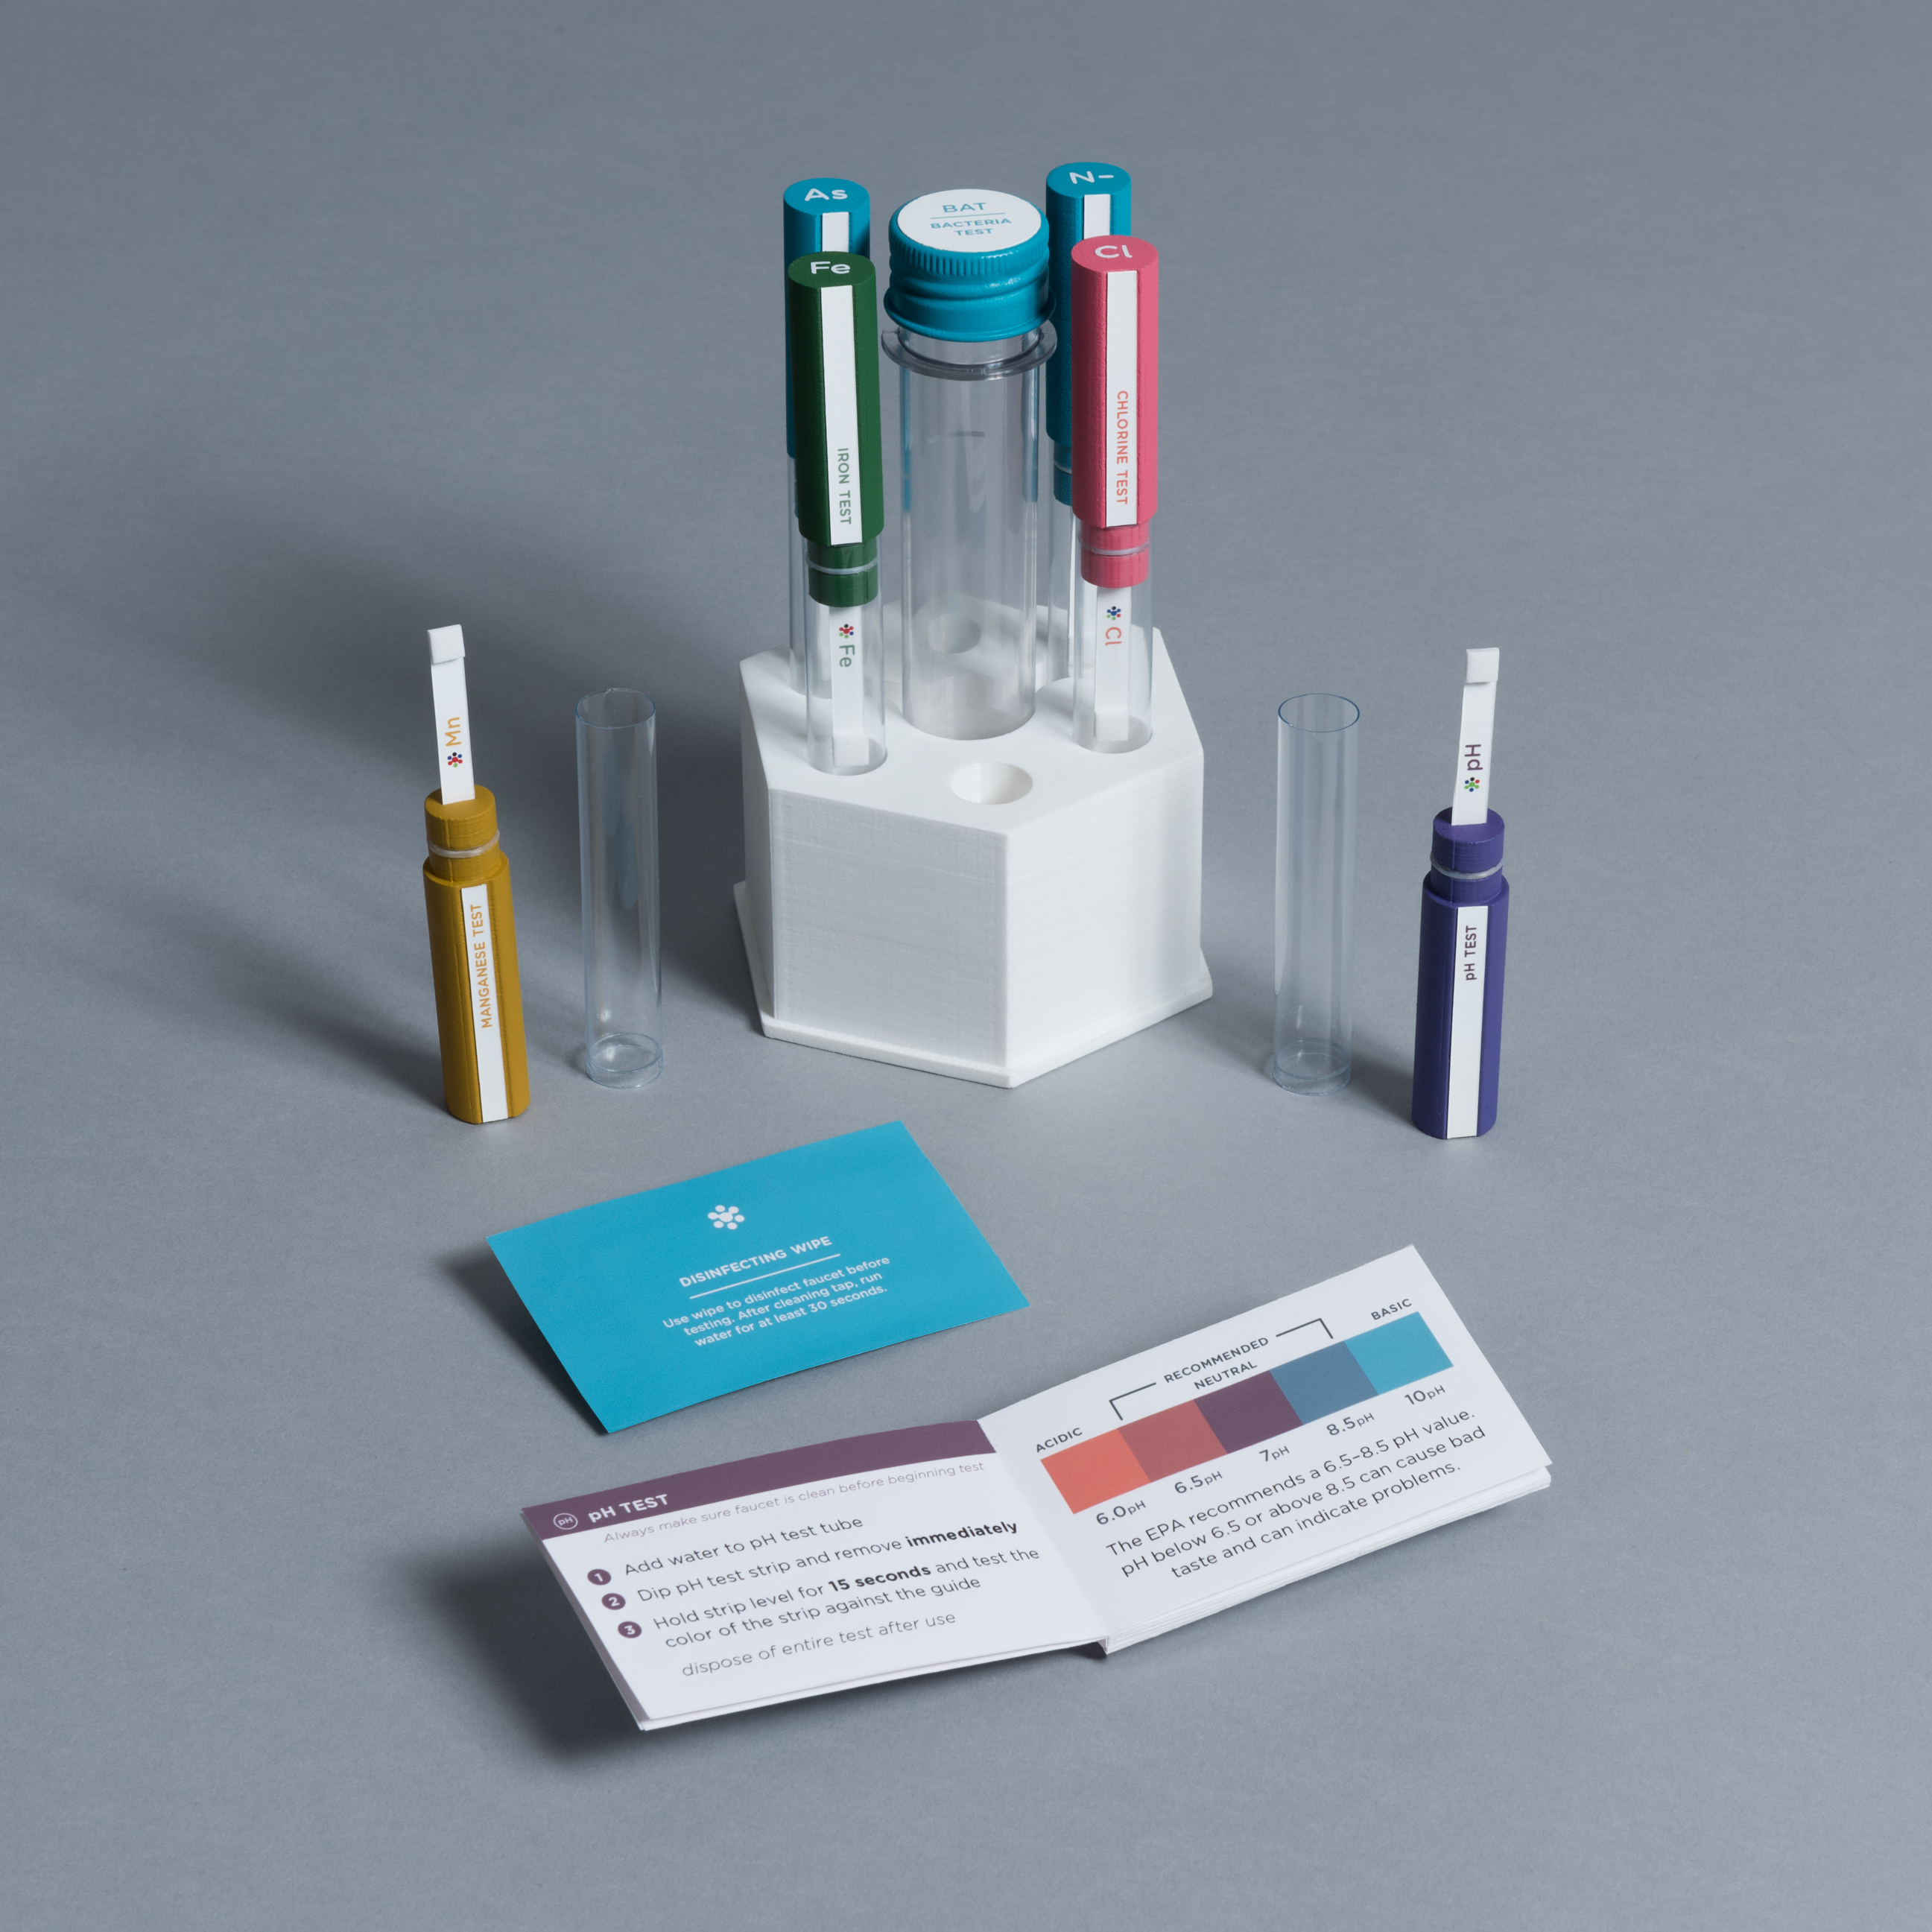 A set of test tubes and a hexagonal case with a small open booklet